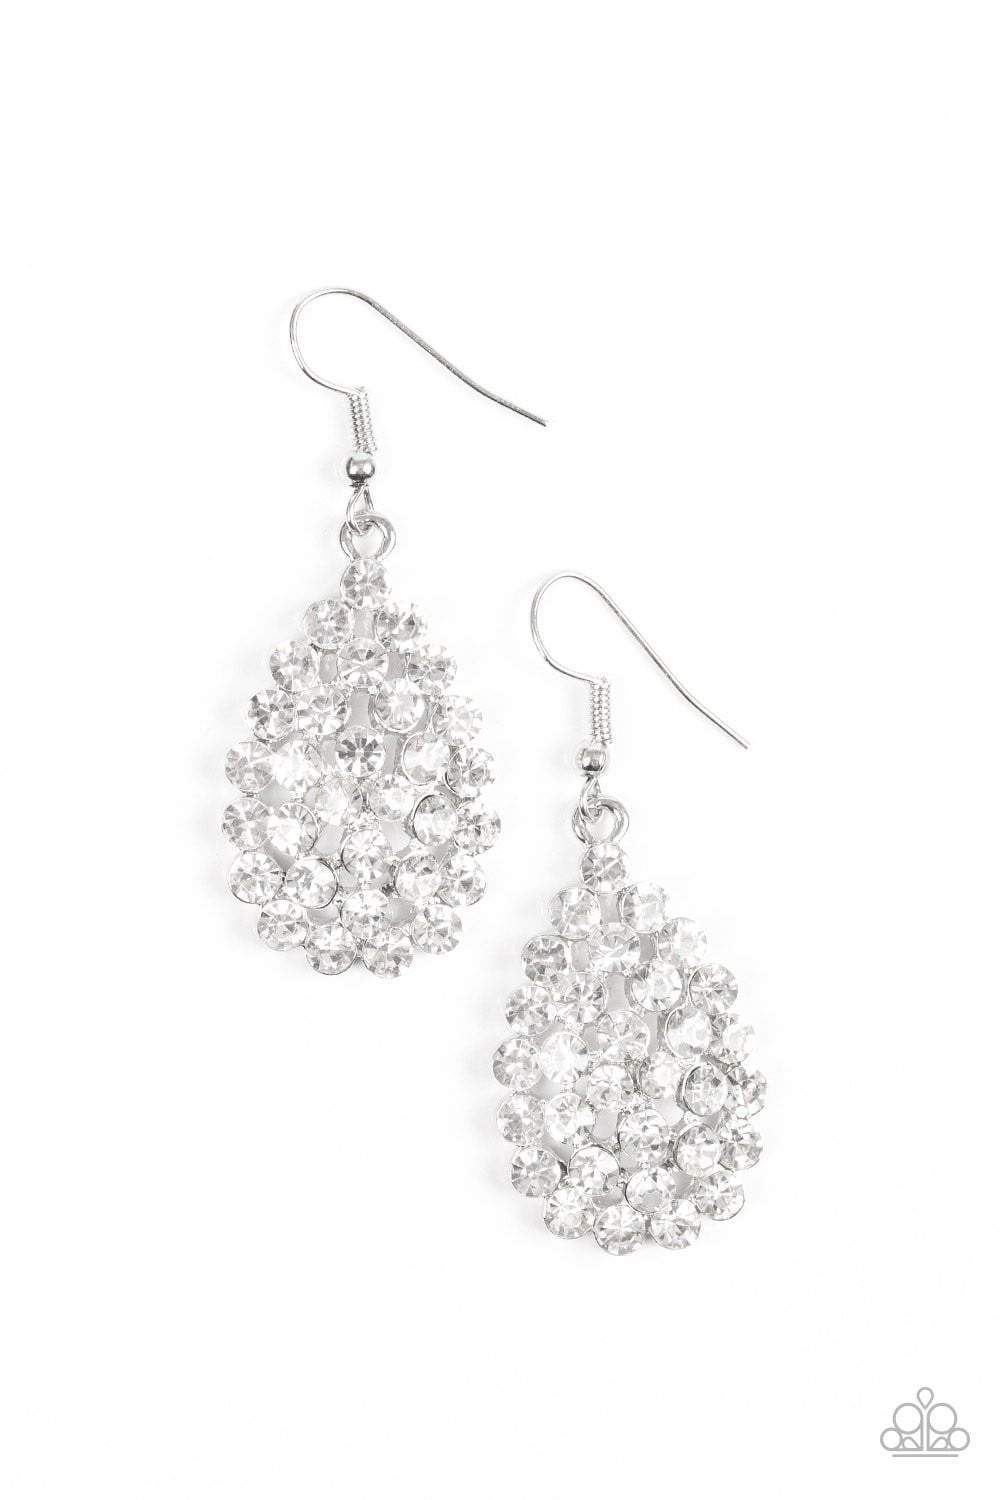 Paparazzi Sparkling Sparkle-naire - White Rhinestone Teardrop Silver Fitting Earrings - Bling It On Online